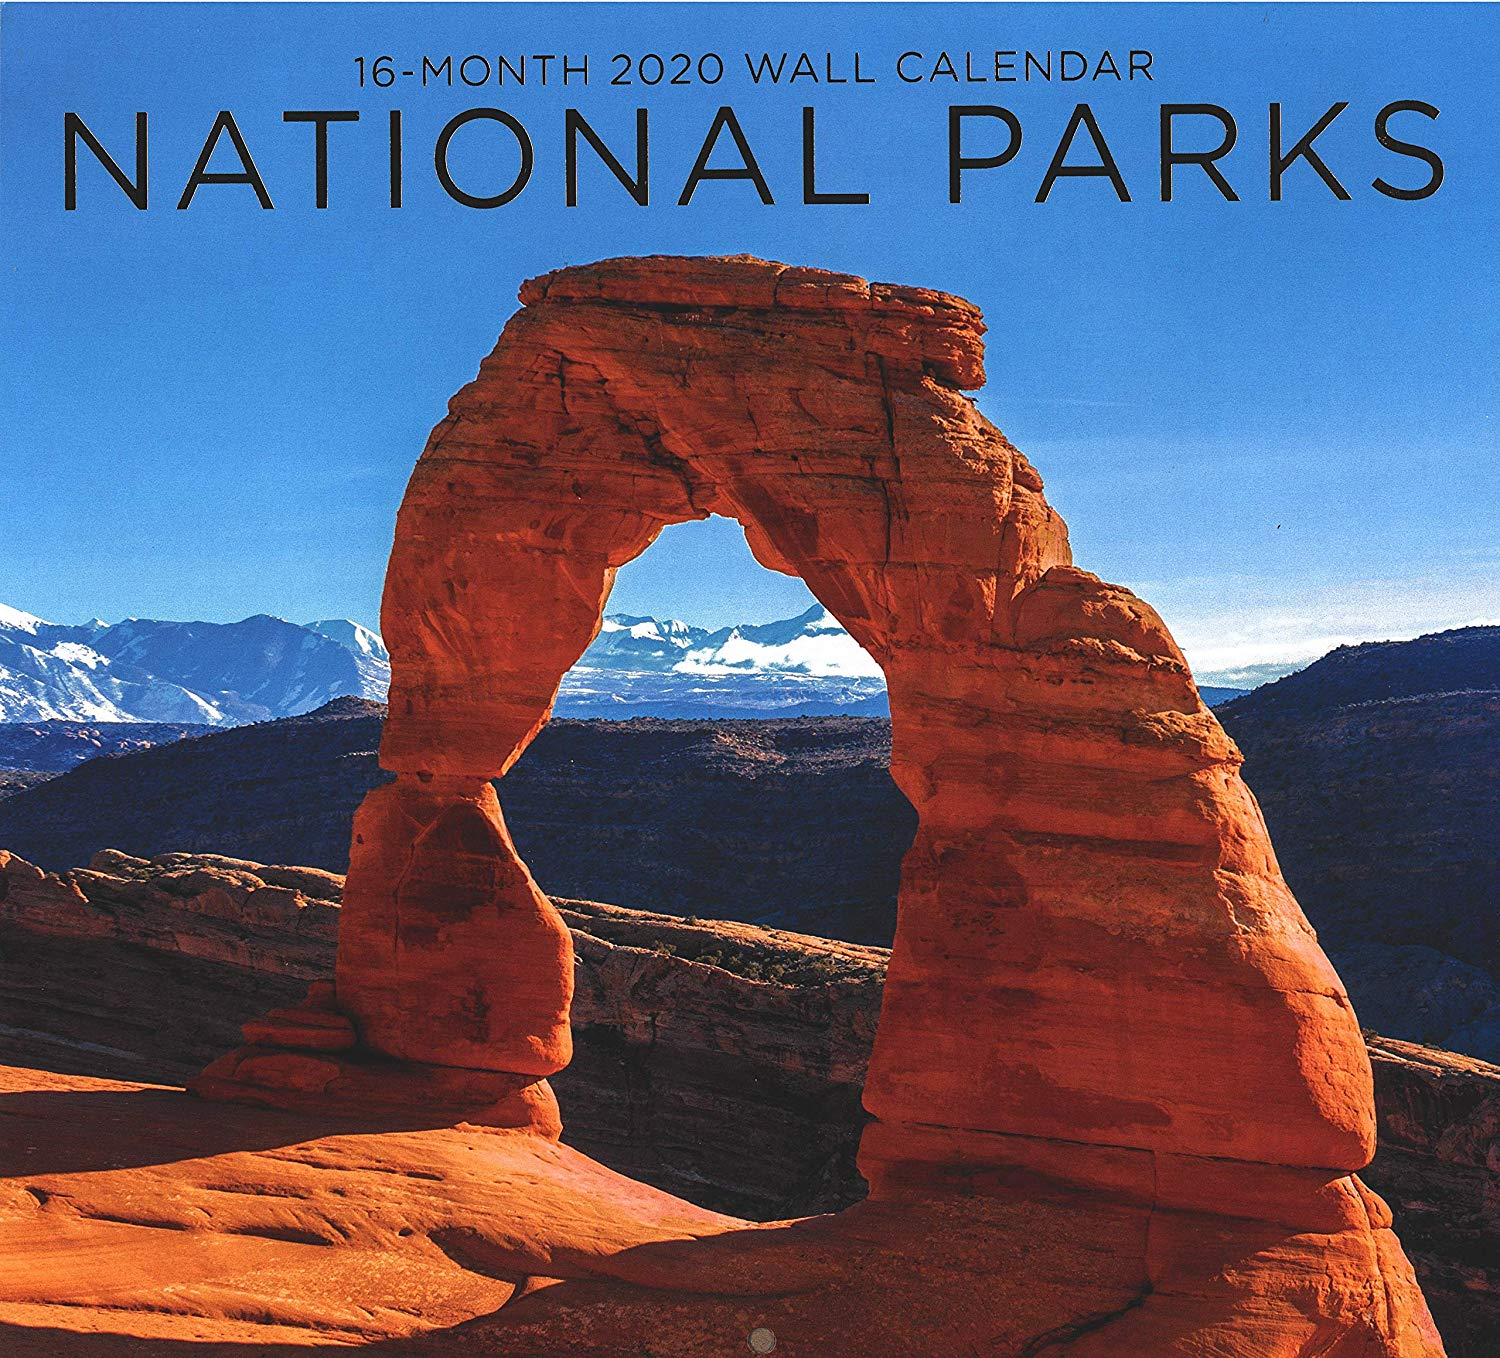 2020 National Parks Full-Size Wall Calendar, 16-Month